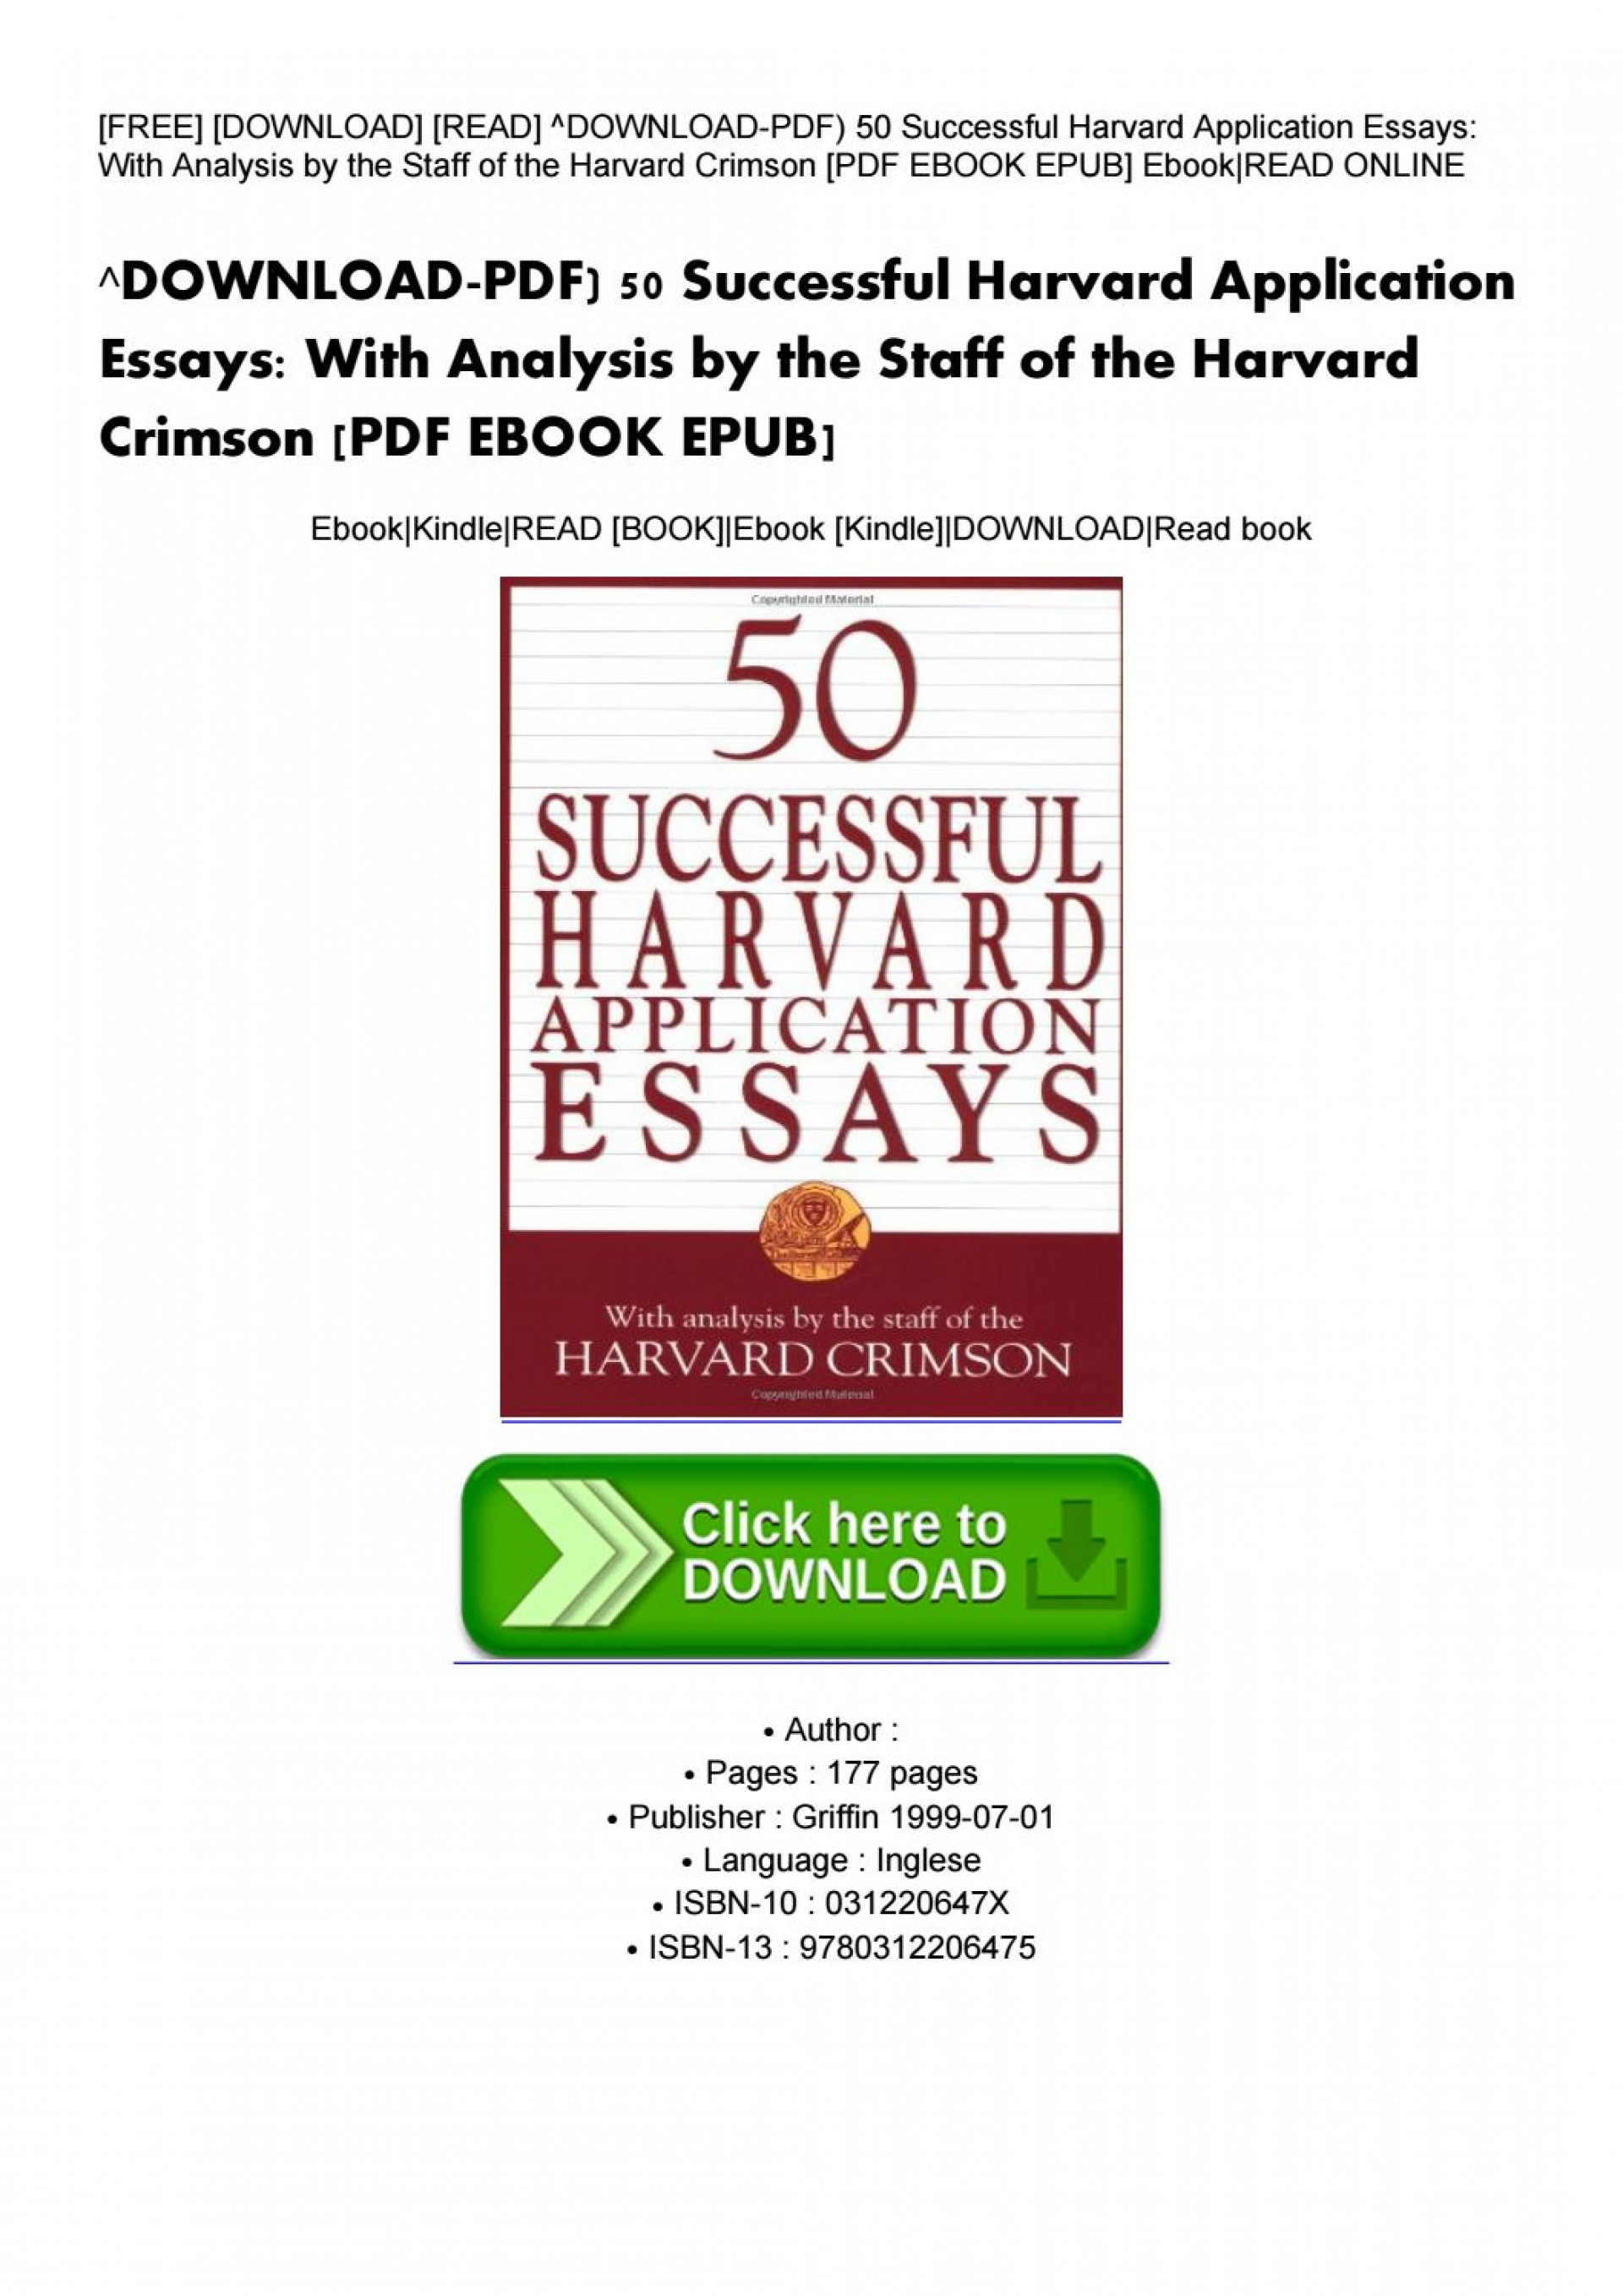 003 Essay Example Successful Harvard Application Essays Pdf Page 1 Impressive 50 Free 4th Edition Download 1920